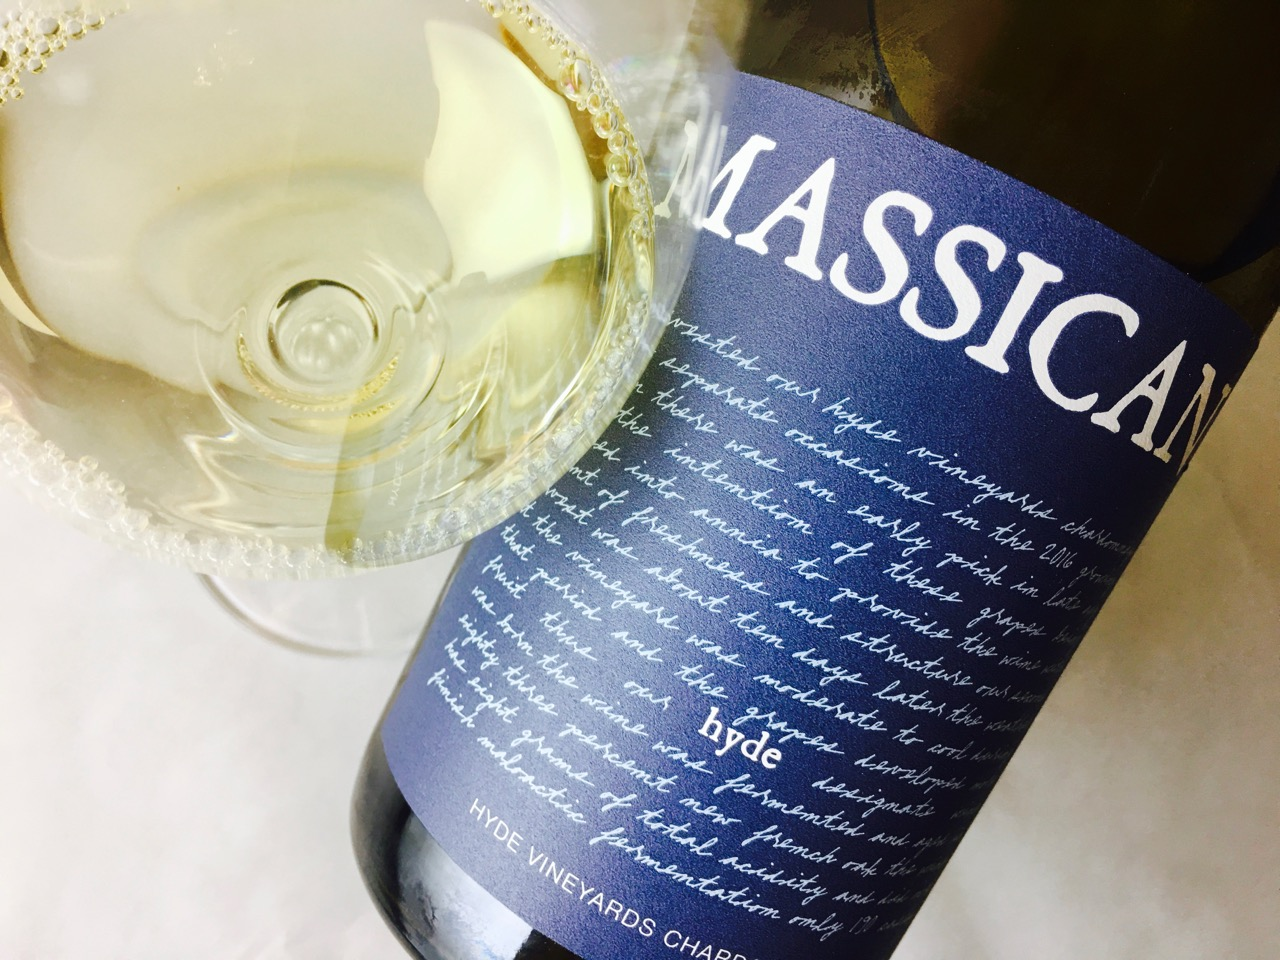 2016 Massican Chardonnay Hyde Napa Valley